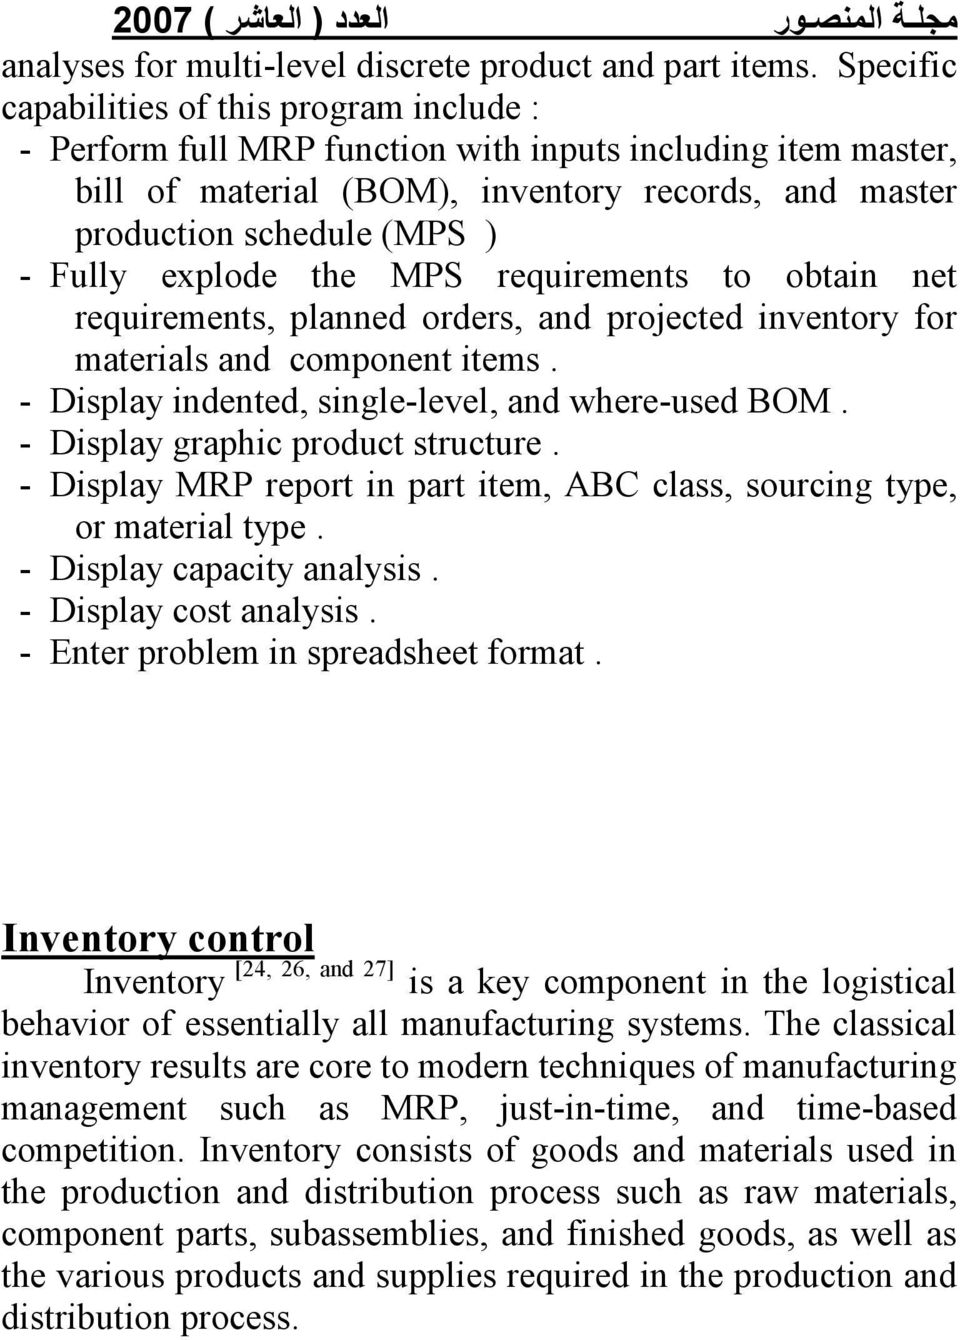 explode the MPS requirements to obtain net requirements, planned orders, and projected inventory for materials and component items. - Display indented, single-level, and where-used BOM.